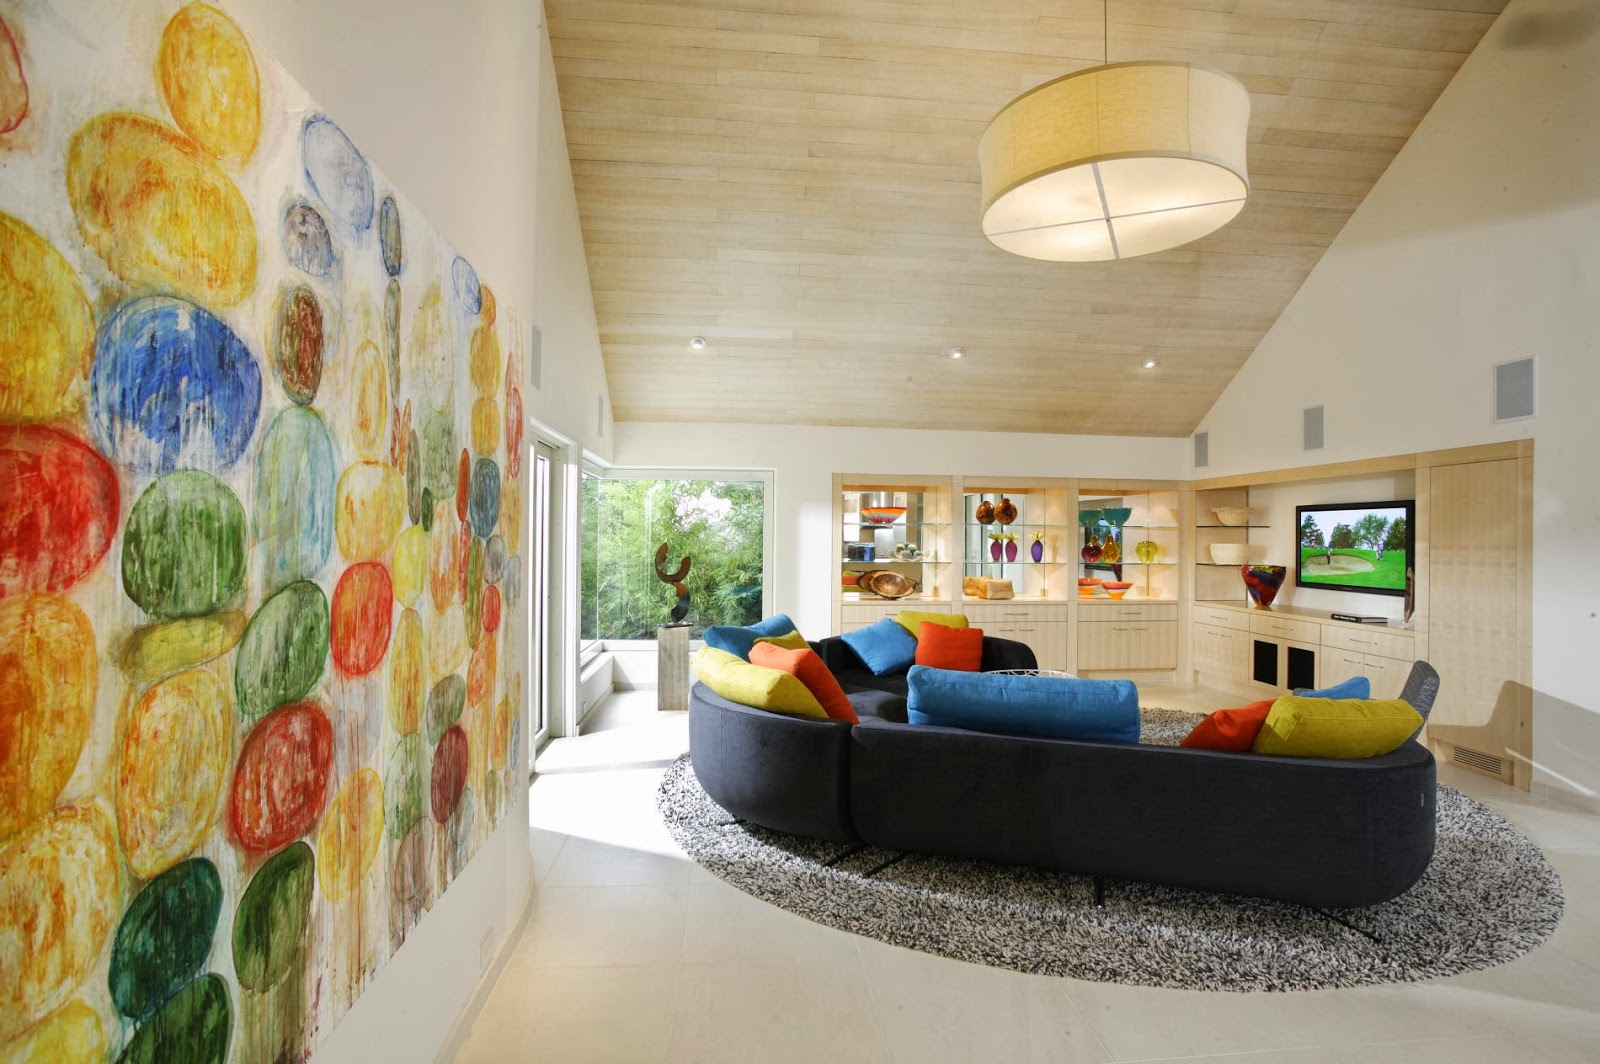 Fresh And Lively Living Room Design With Attractive Wall Art In This  Contemporary Home Design